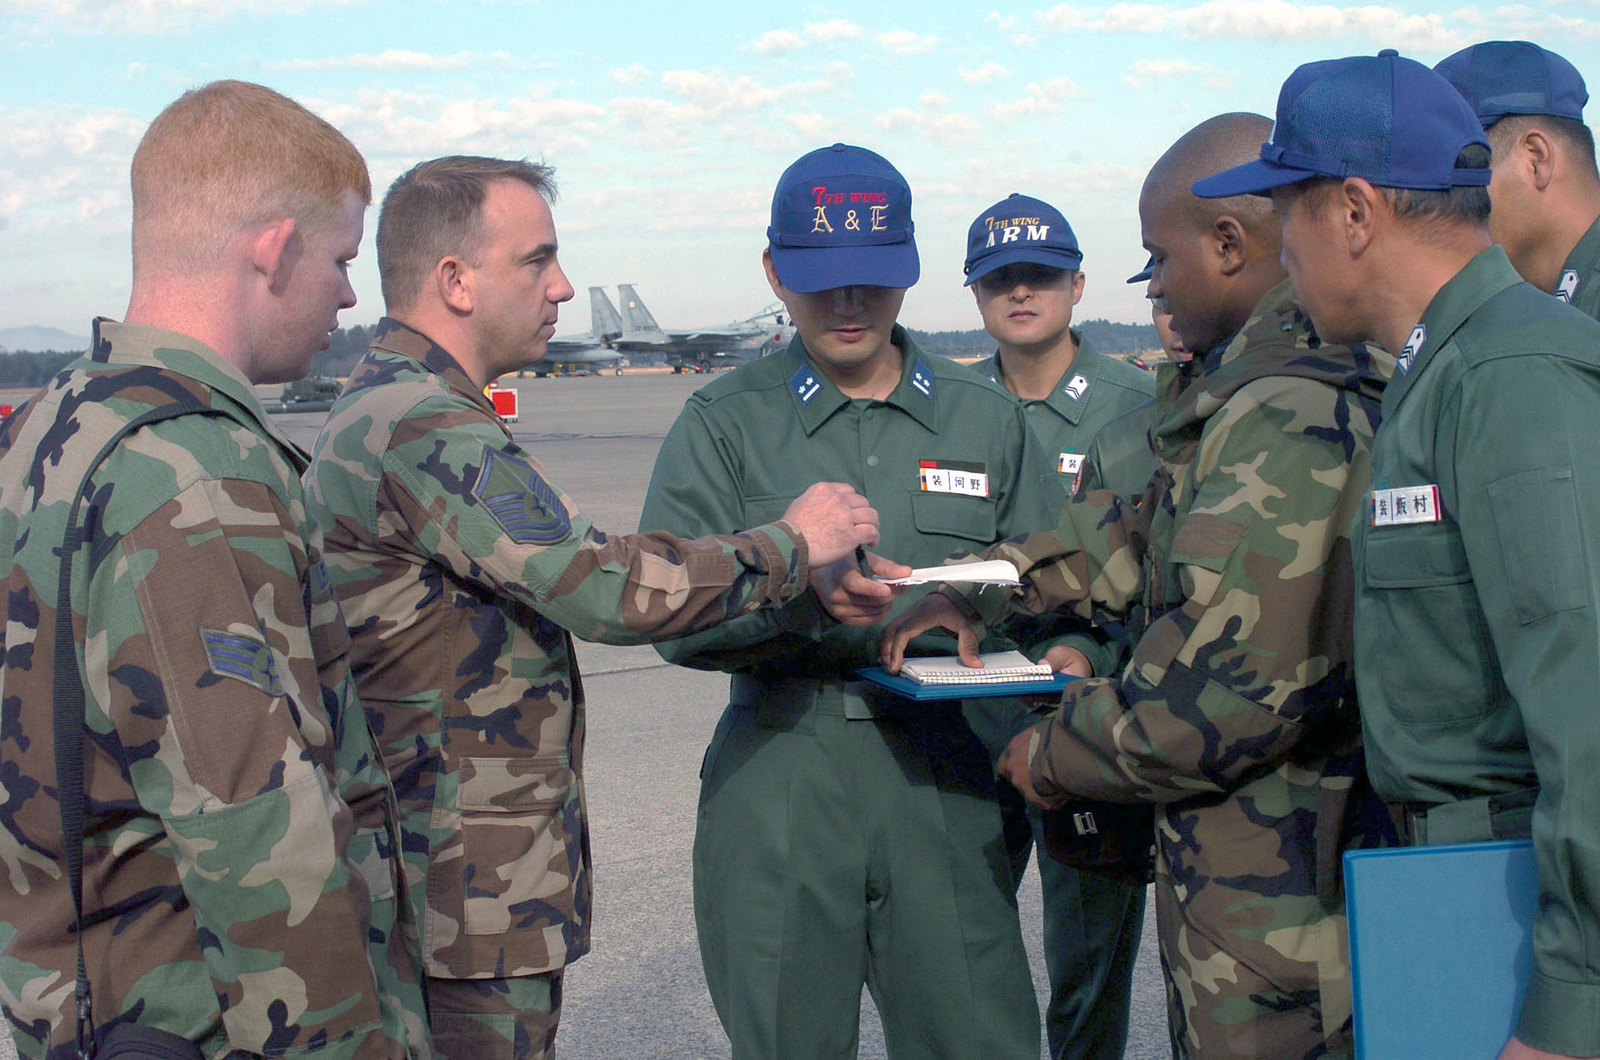 U.S. Air Force personnel together with Japan Air Self-Defense Force troops exchange information on exercise procedures during exercise Keen Sword 05 at Hyakuri Japanese Air Base, Japan, on Nov. 17, 2004.(U.S. Air Force PHOTO by MASTER SGT. Val Gempis) (Released)